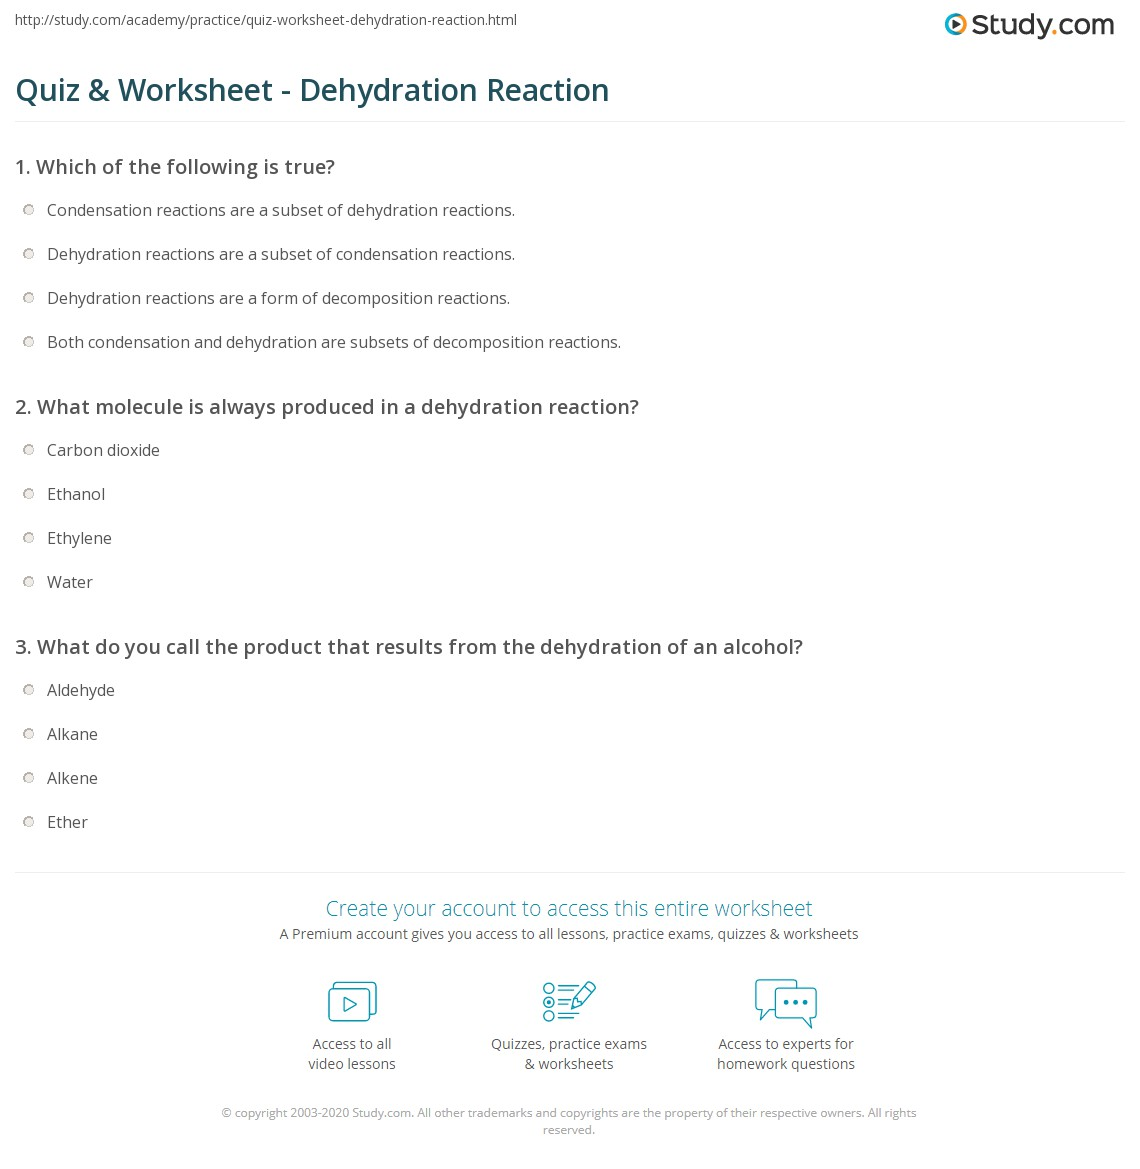 Quiz & Worksheet - Dehydration Reaction | Study com